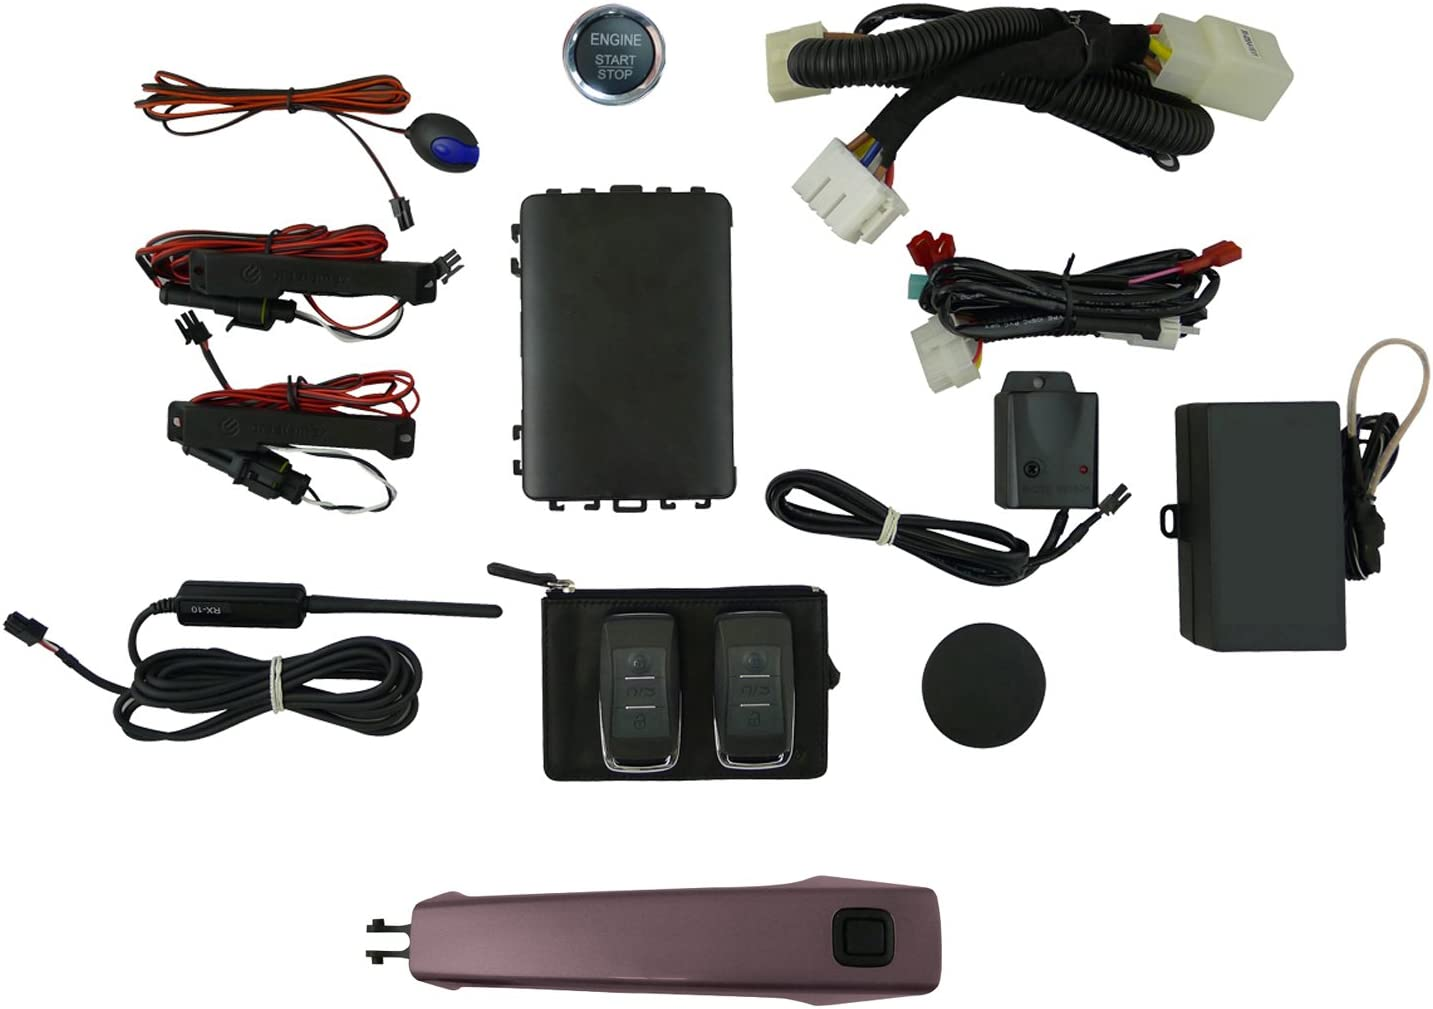 EasyGO AM-GMT-403P Smart Key Remote Start and Alarm System with ...